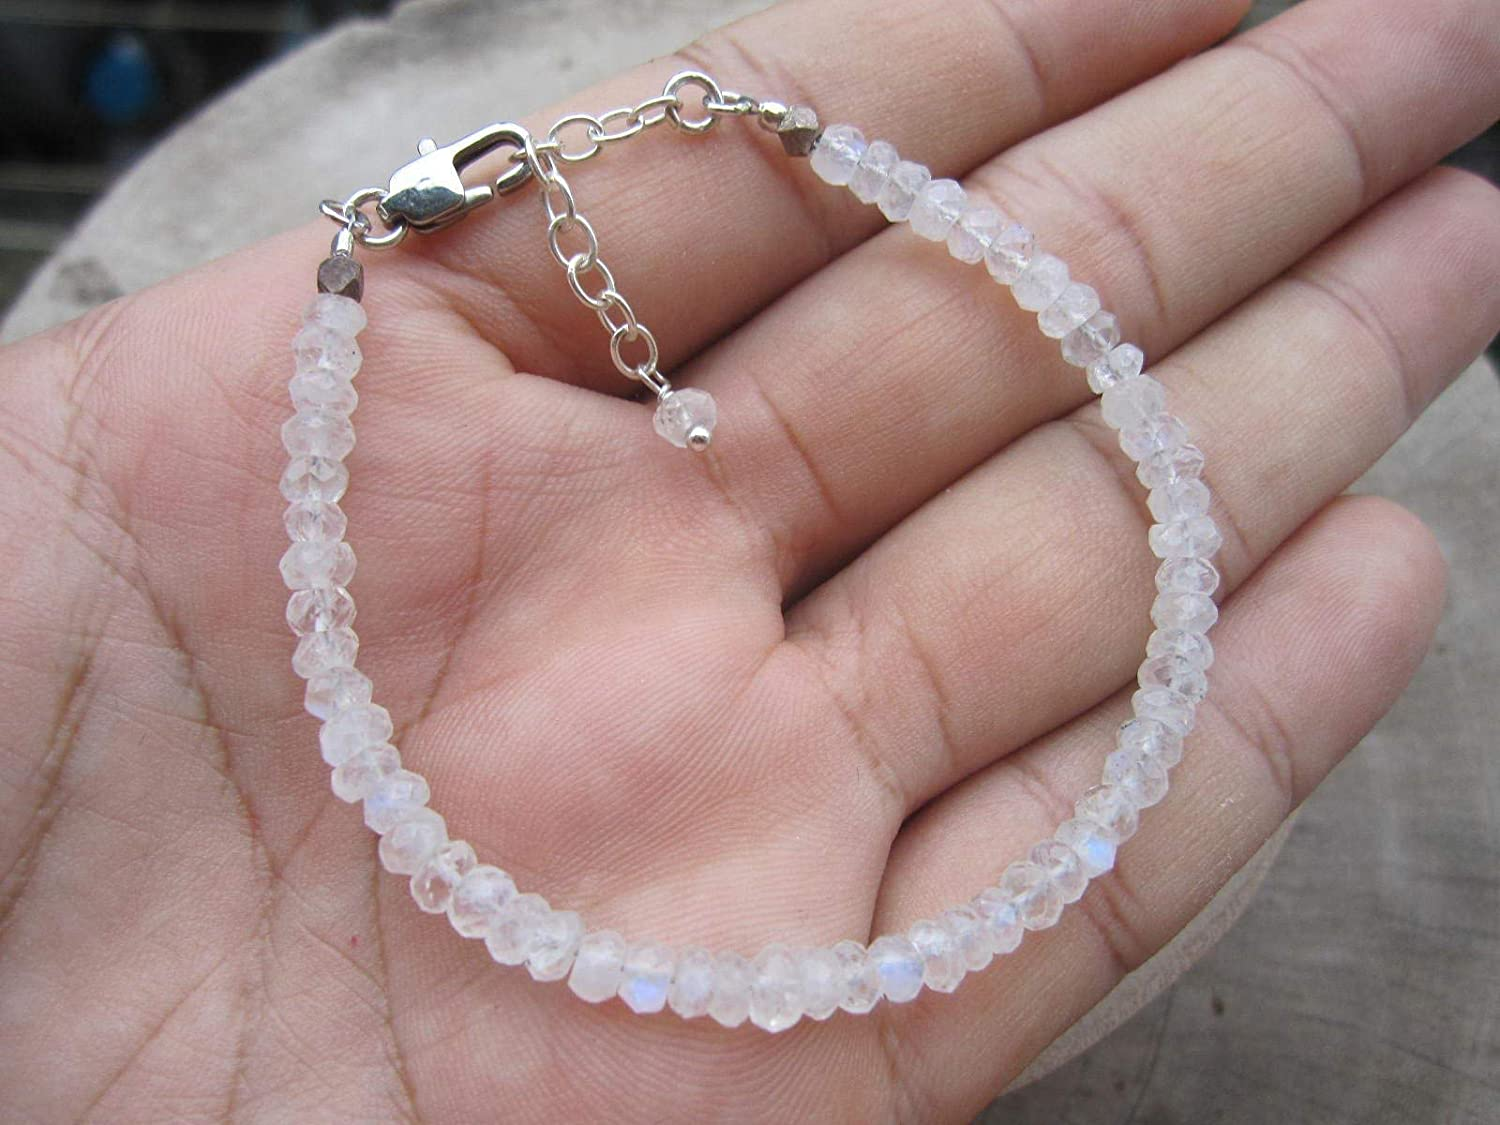 rencontrer apparence élégante grande vente Rainbow Moonstone Bracelet,925 Sterling Silver Chain Extender 1 Inch -  Adjustable from Size 6.5-7.5 Inches,BRM